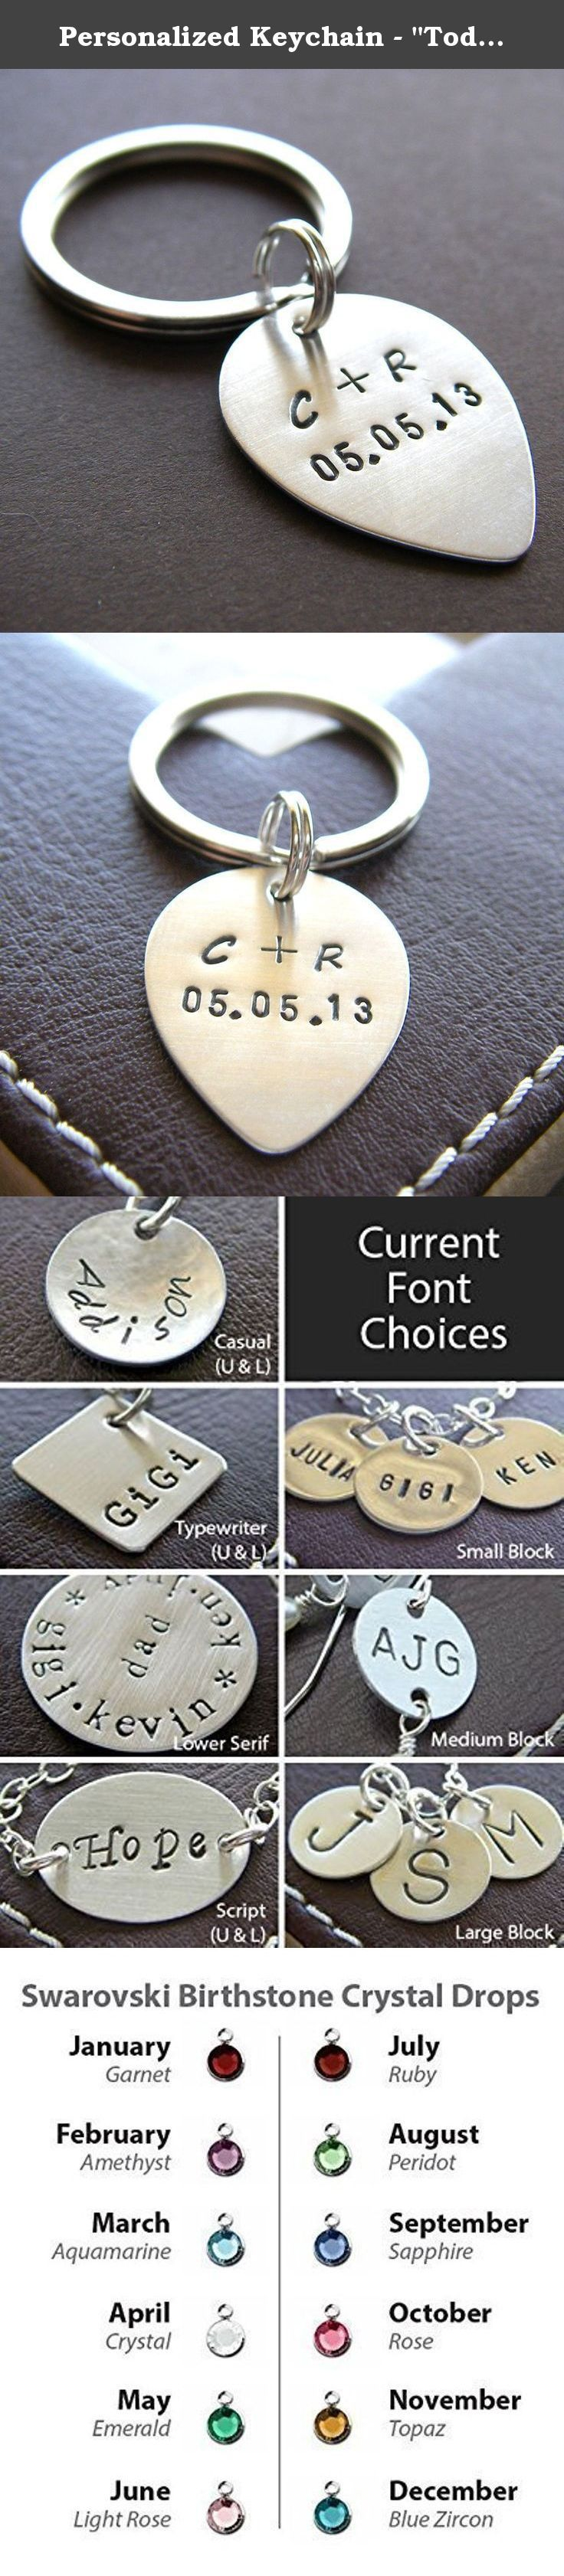 "Personalized Keychain - ""Today is the Day"" Mini Guitar Pick Key Chain - Hand Stamped Sterling Silver. This personalized key chain makes a perfect gift! A 3/4"" sterling silver disc is stamped with a monogram and attached to a 24 mm silver plated key ring. You can personalize it with an initial, names, or any words of your choice. The most appropriate font for your jewelry will partially depend upon the size of the charm. Examples of the following fonts can be seen above. For simple…"